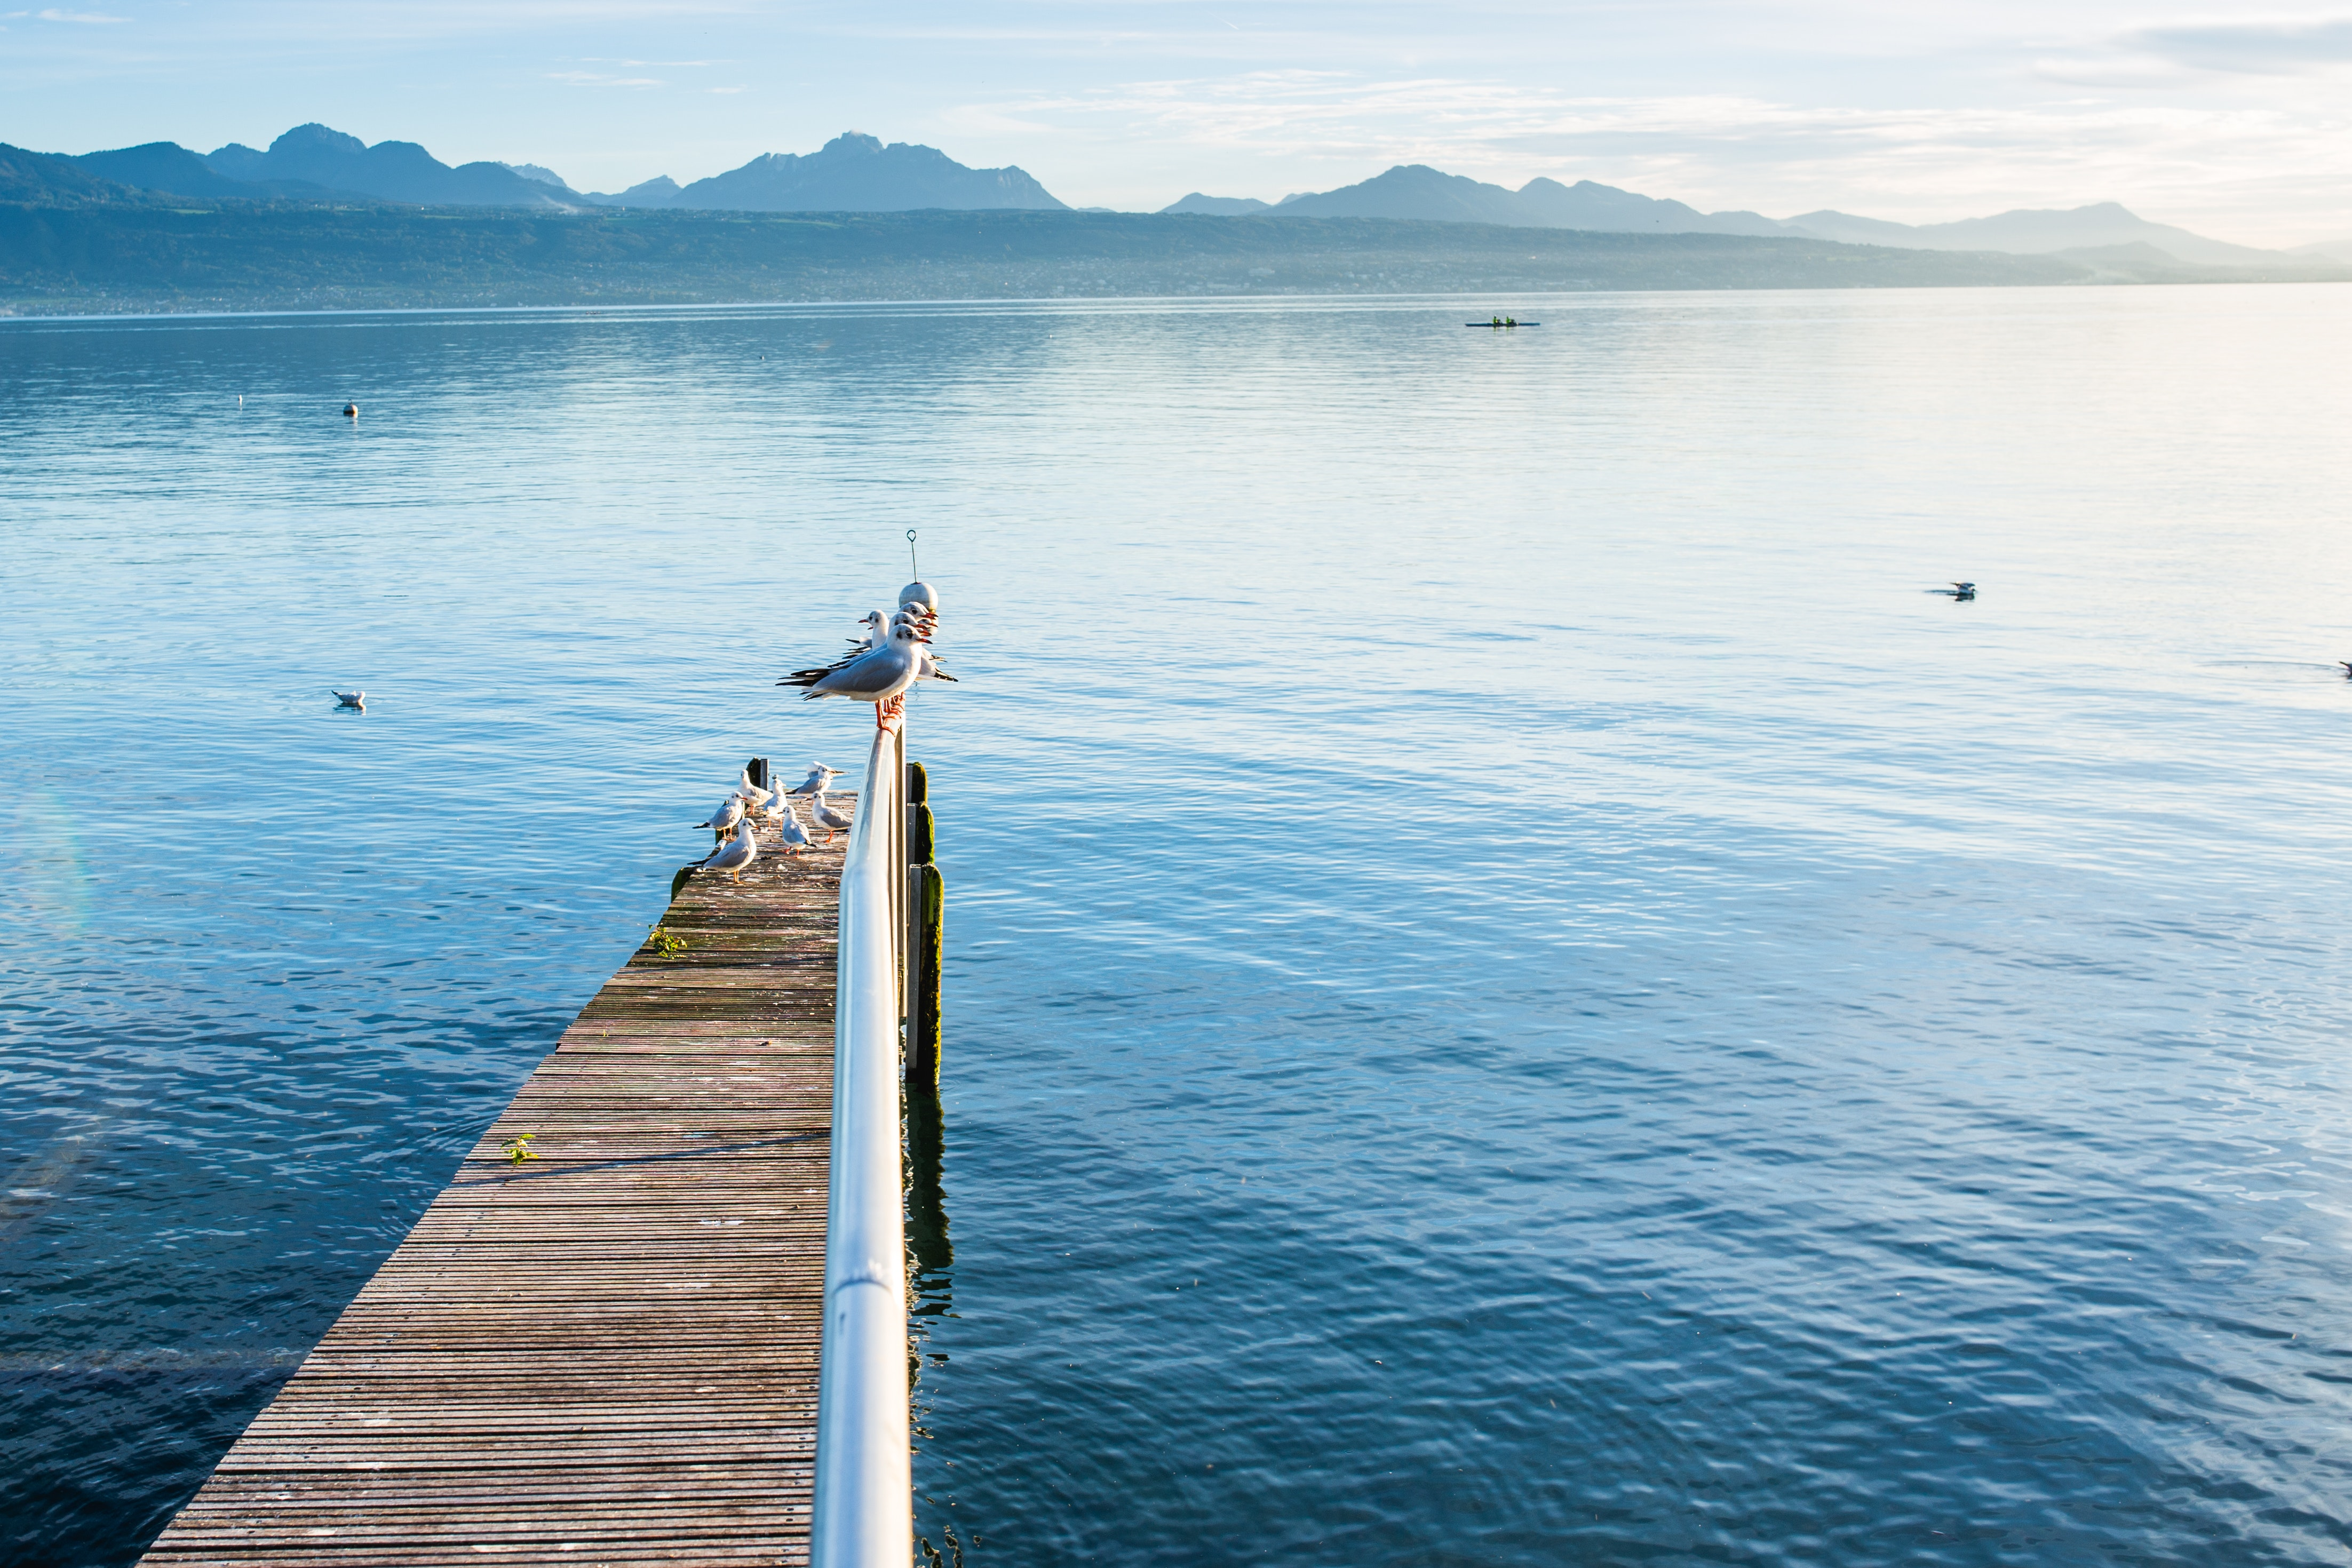 Brown and Silver Pier over Body of Water, Birds, Dock, Gulls, Mountains, HQ Photo